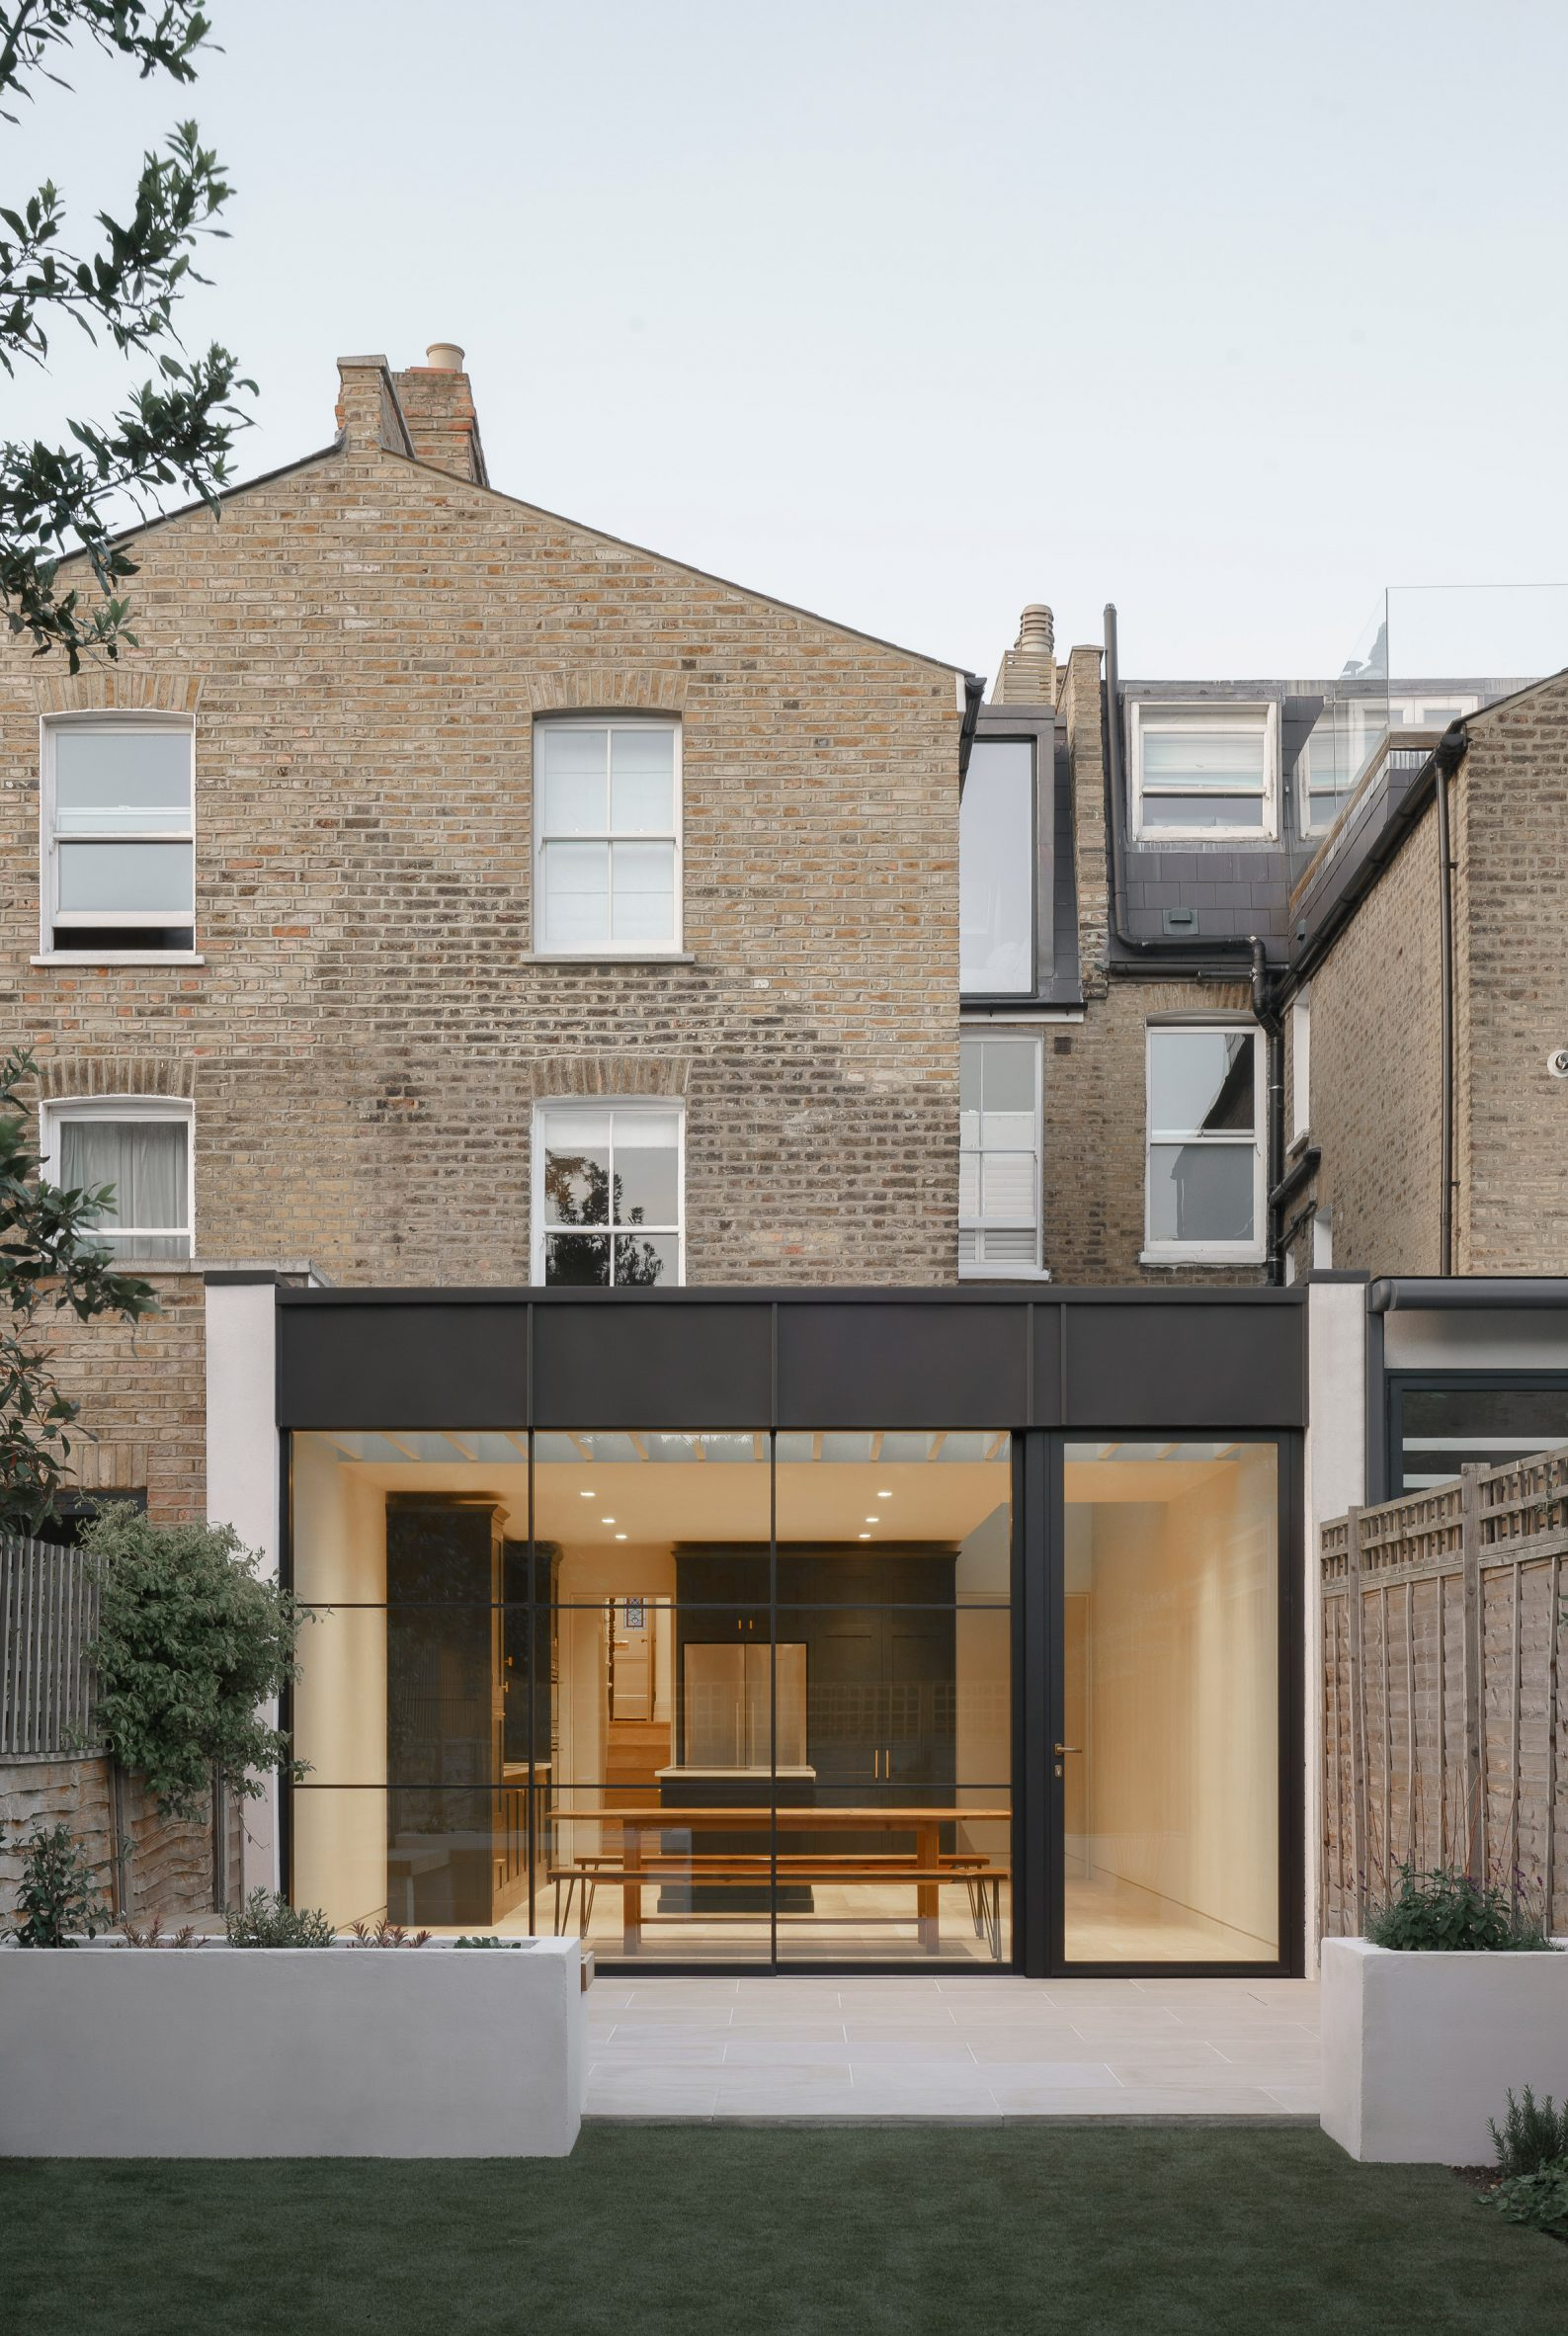 Rear facade and garden of T-House by Will Gamble Architects